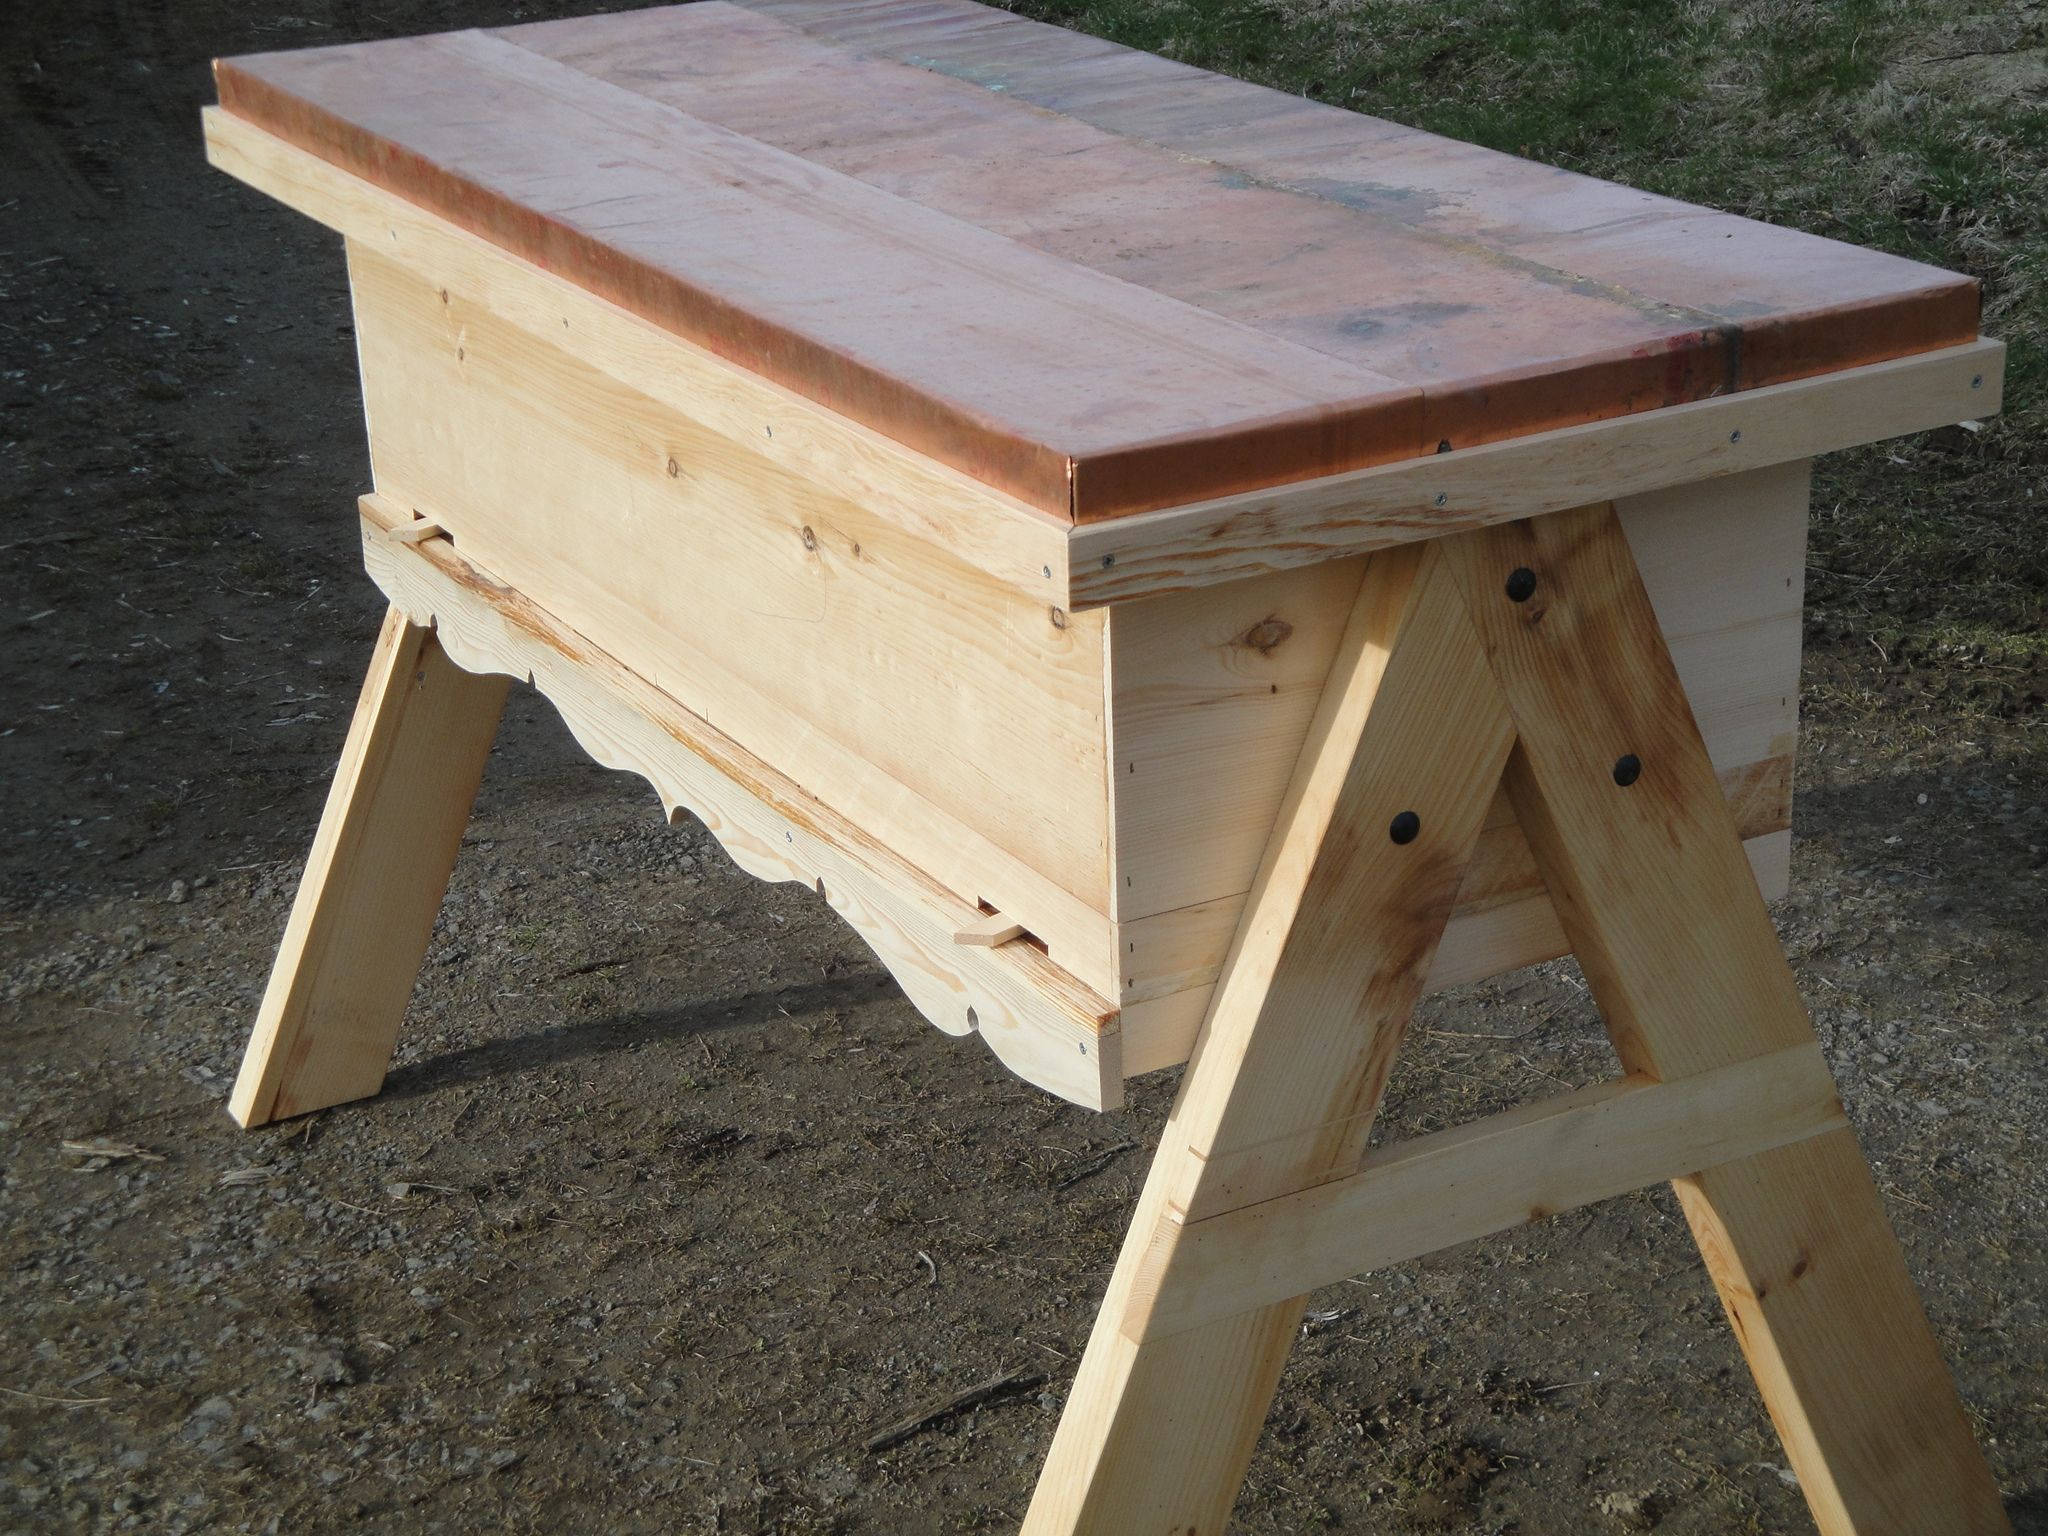 Top Bar Hive 3 6 With Observation Window And Stand